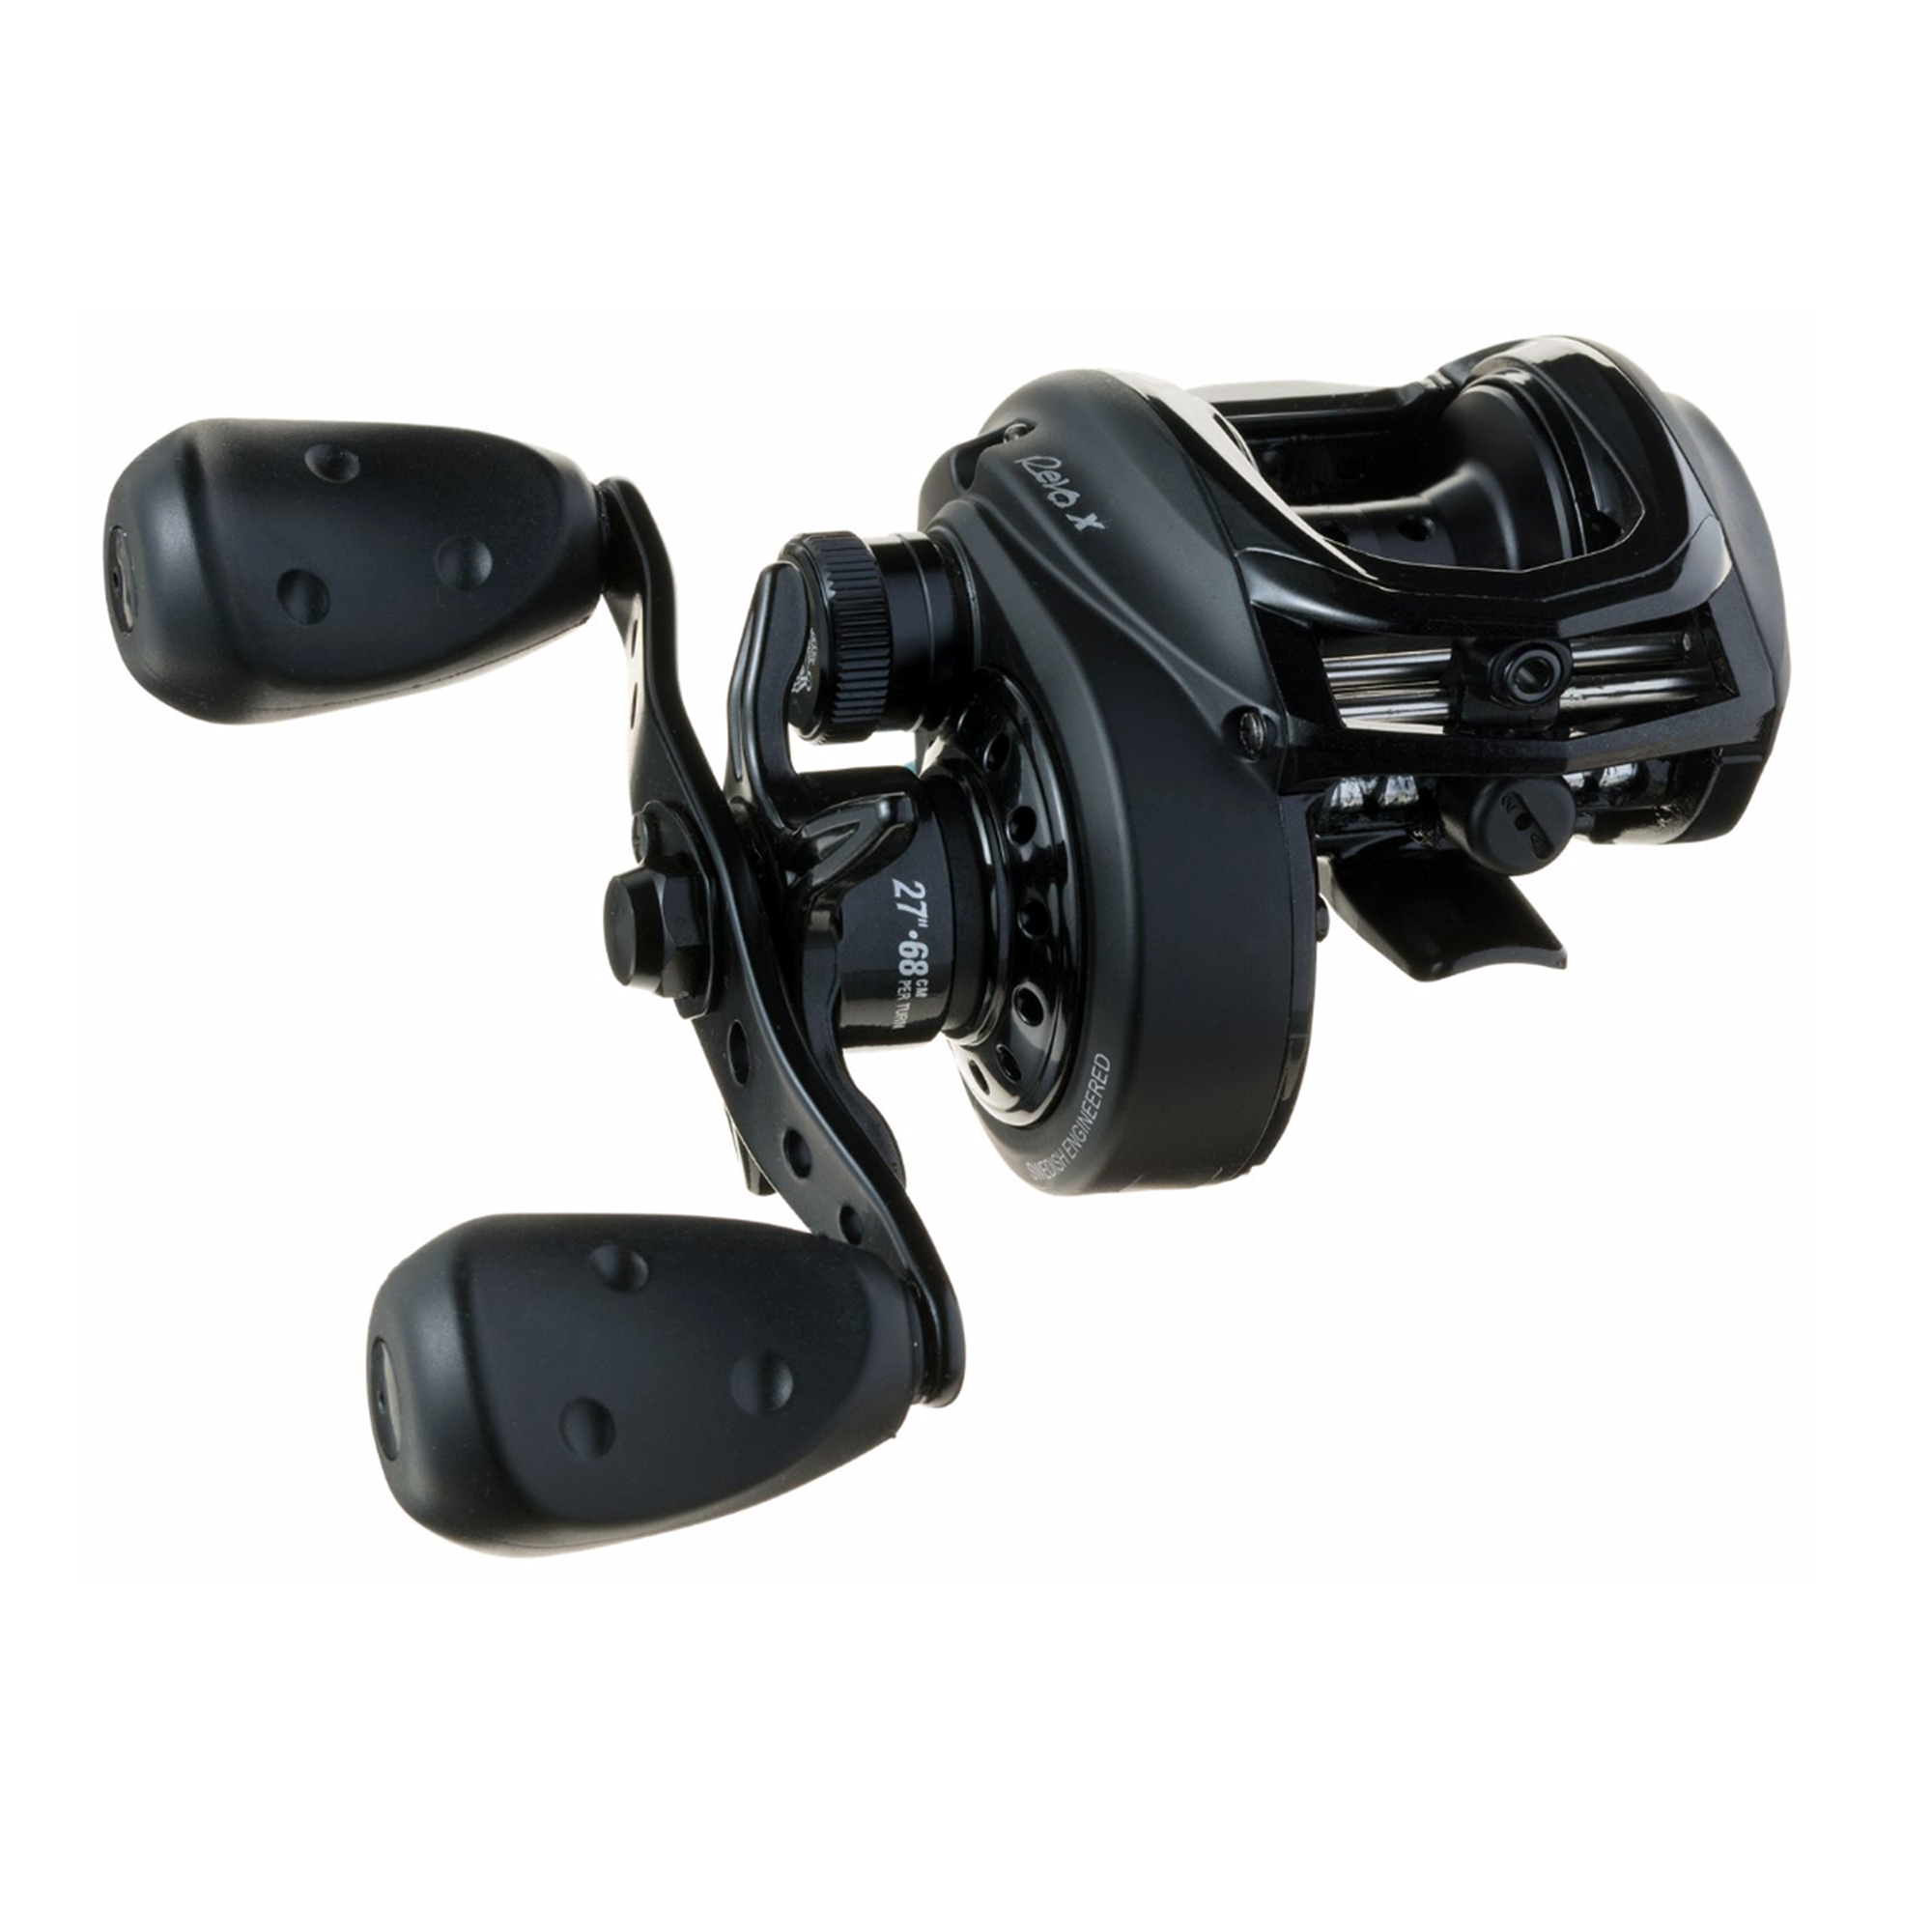 "Abu Garcia Revo 4 X HS Low Profile Baitcasting Reel 7.3:1 Gear Ratio, 30"" Retrieve Rate, 18 lb Max Drag, 8 Bearings, Right Hand"